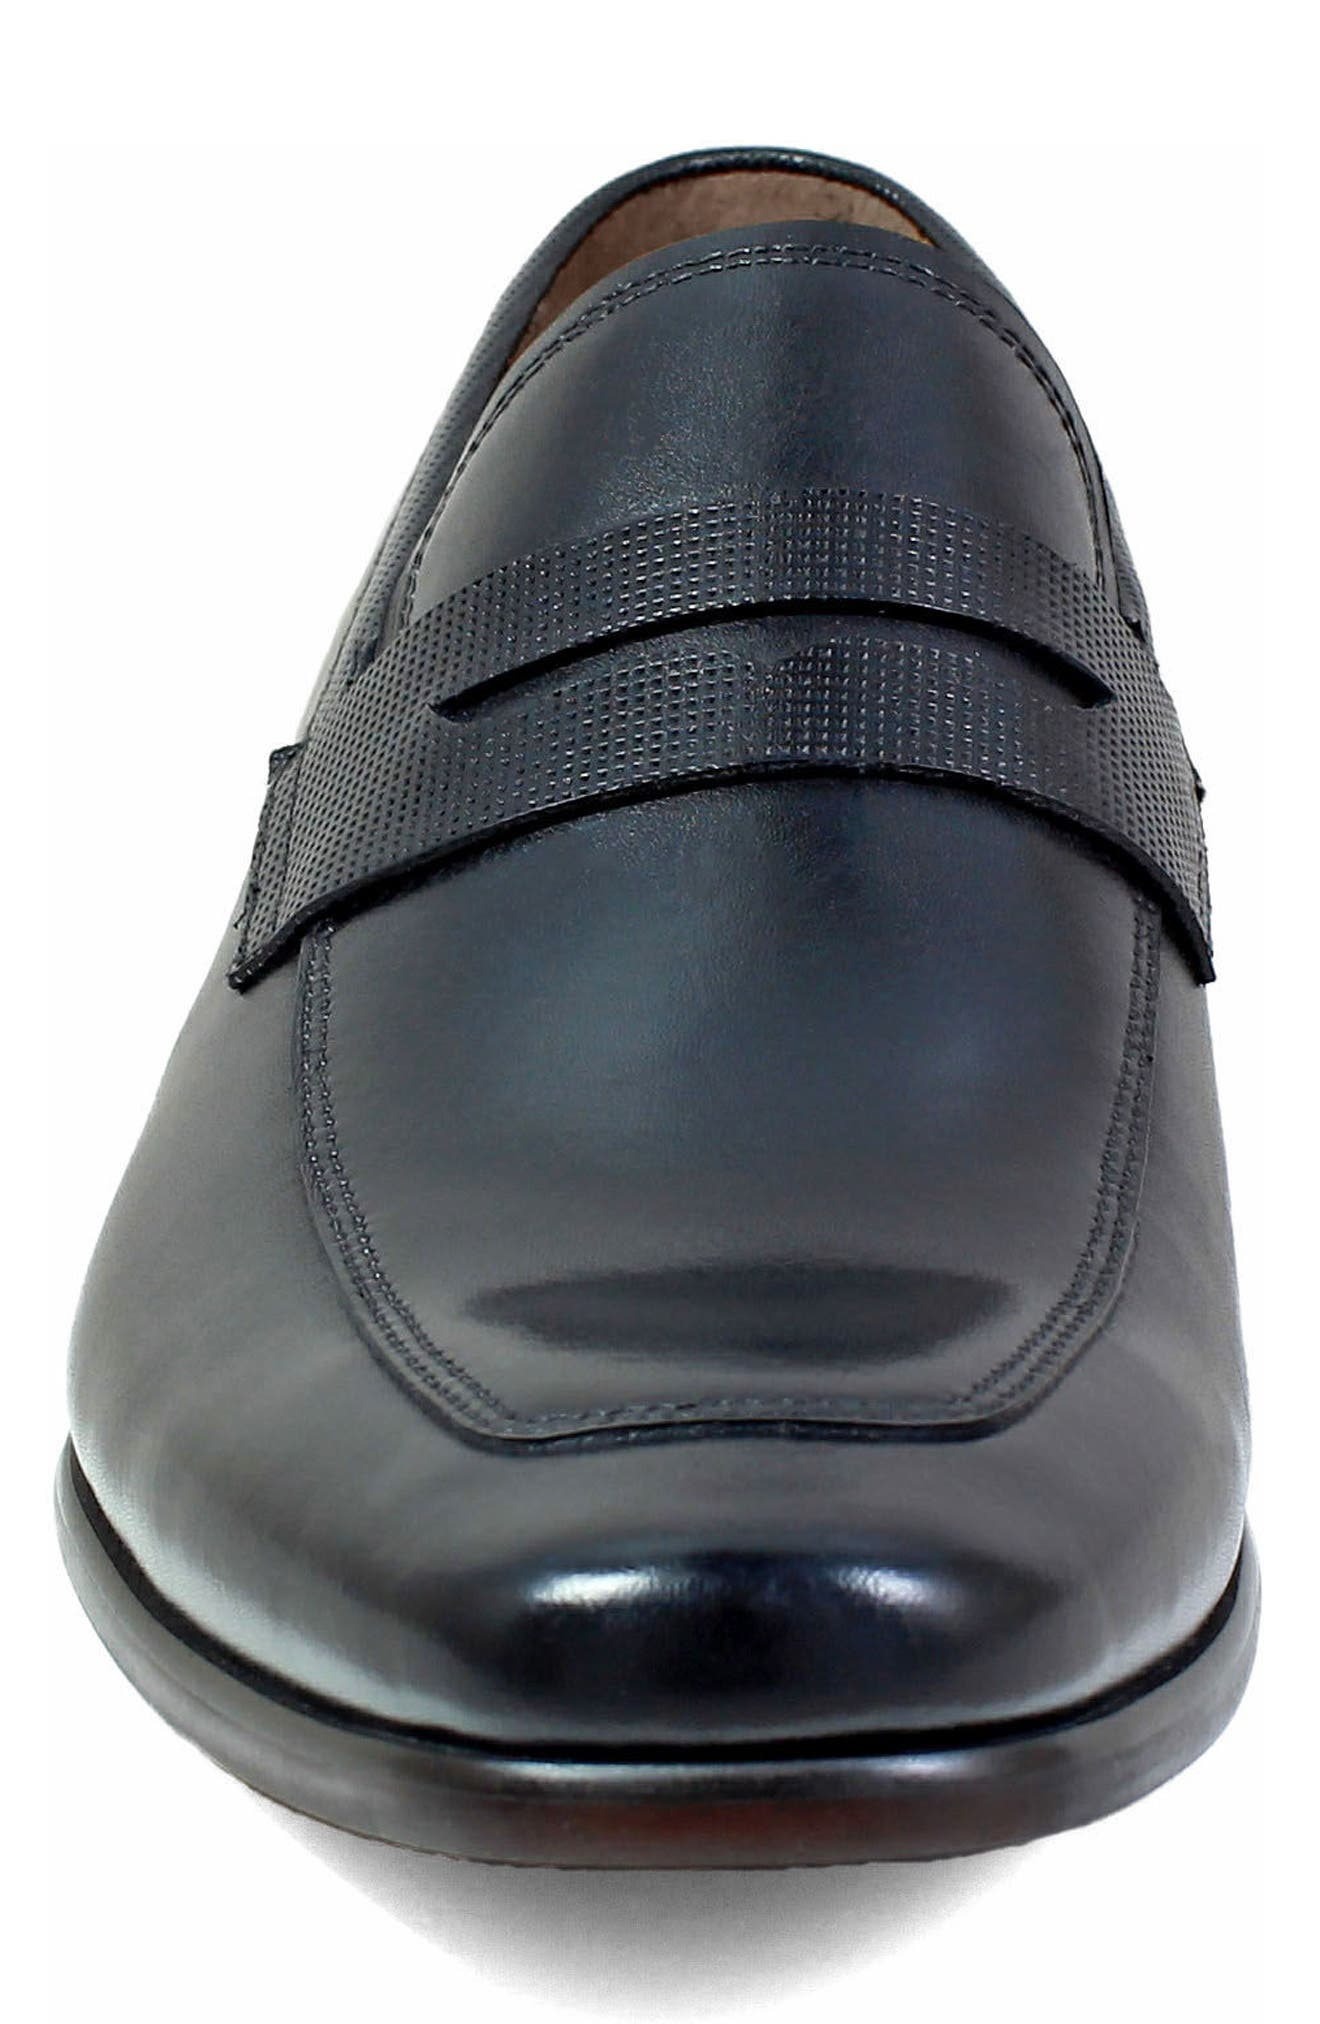 Postino Apron Toe Textured Penny Loafer,                             Alternate thumbnail 4, color,                             Black Leather